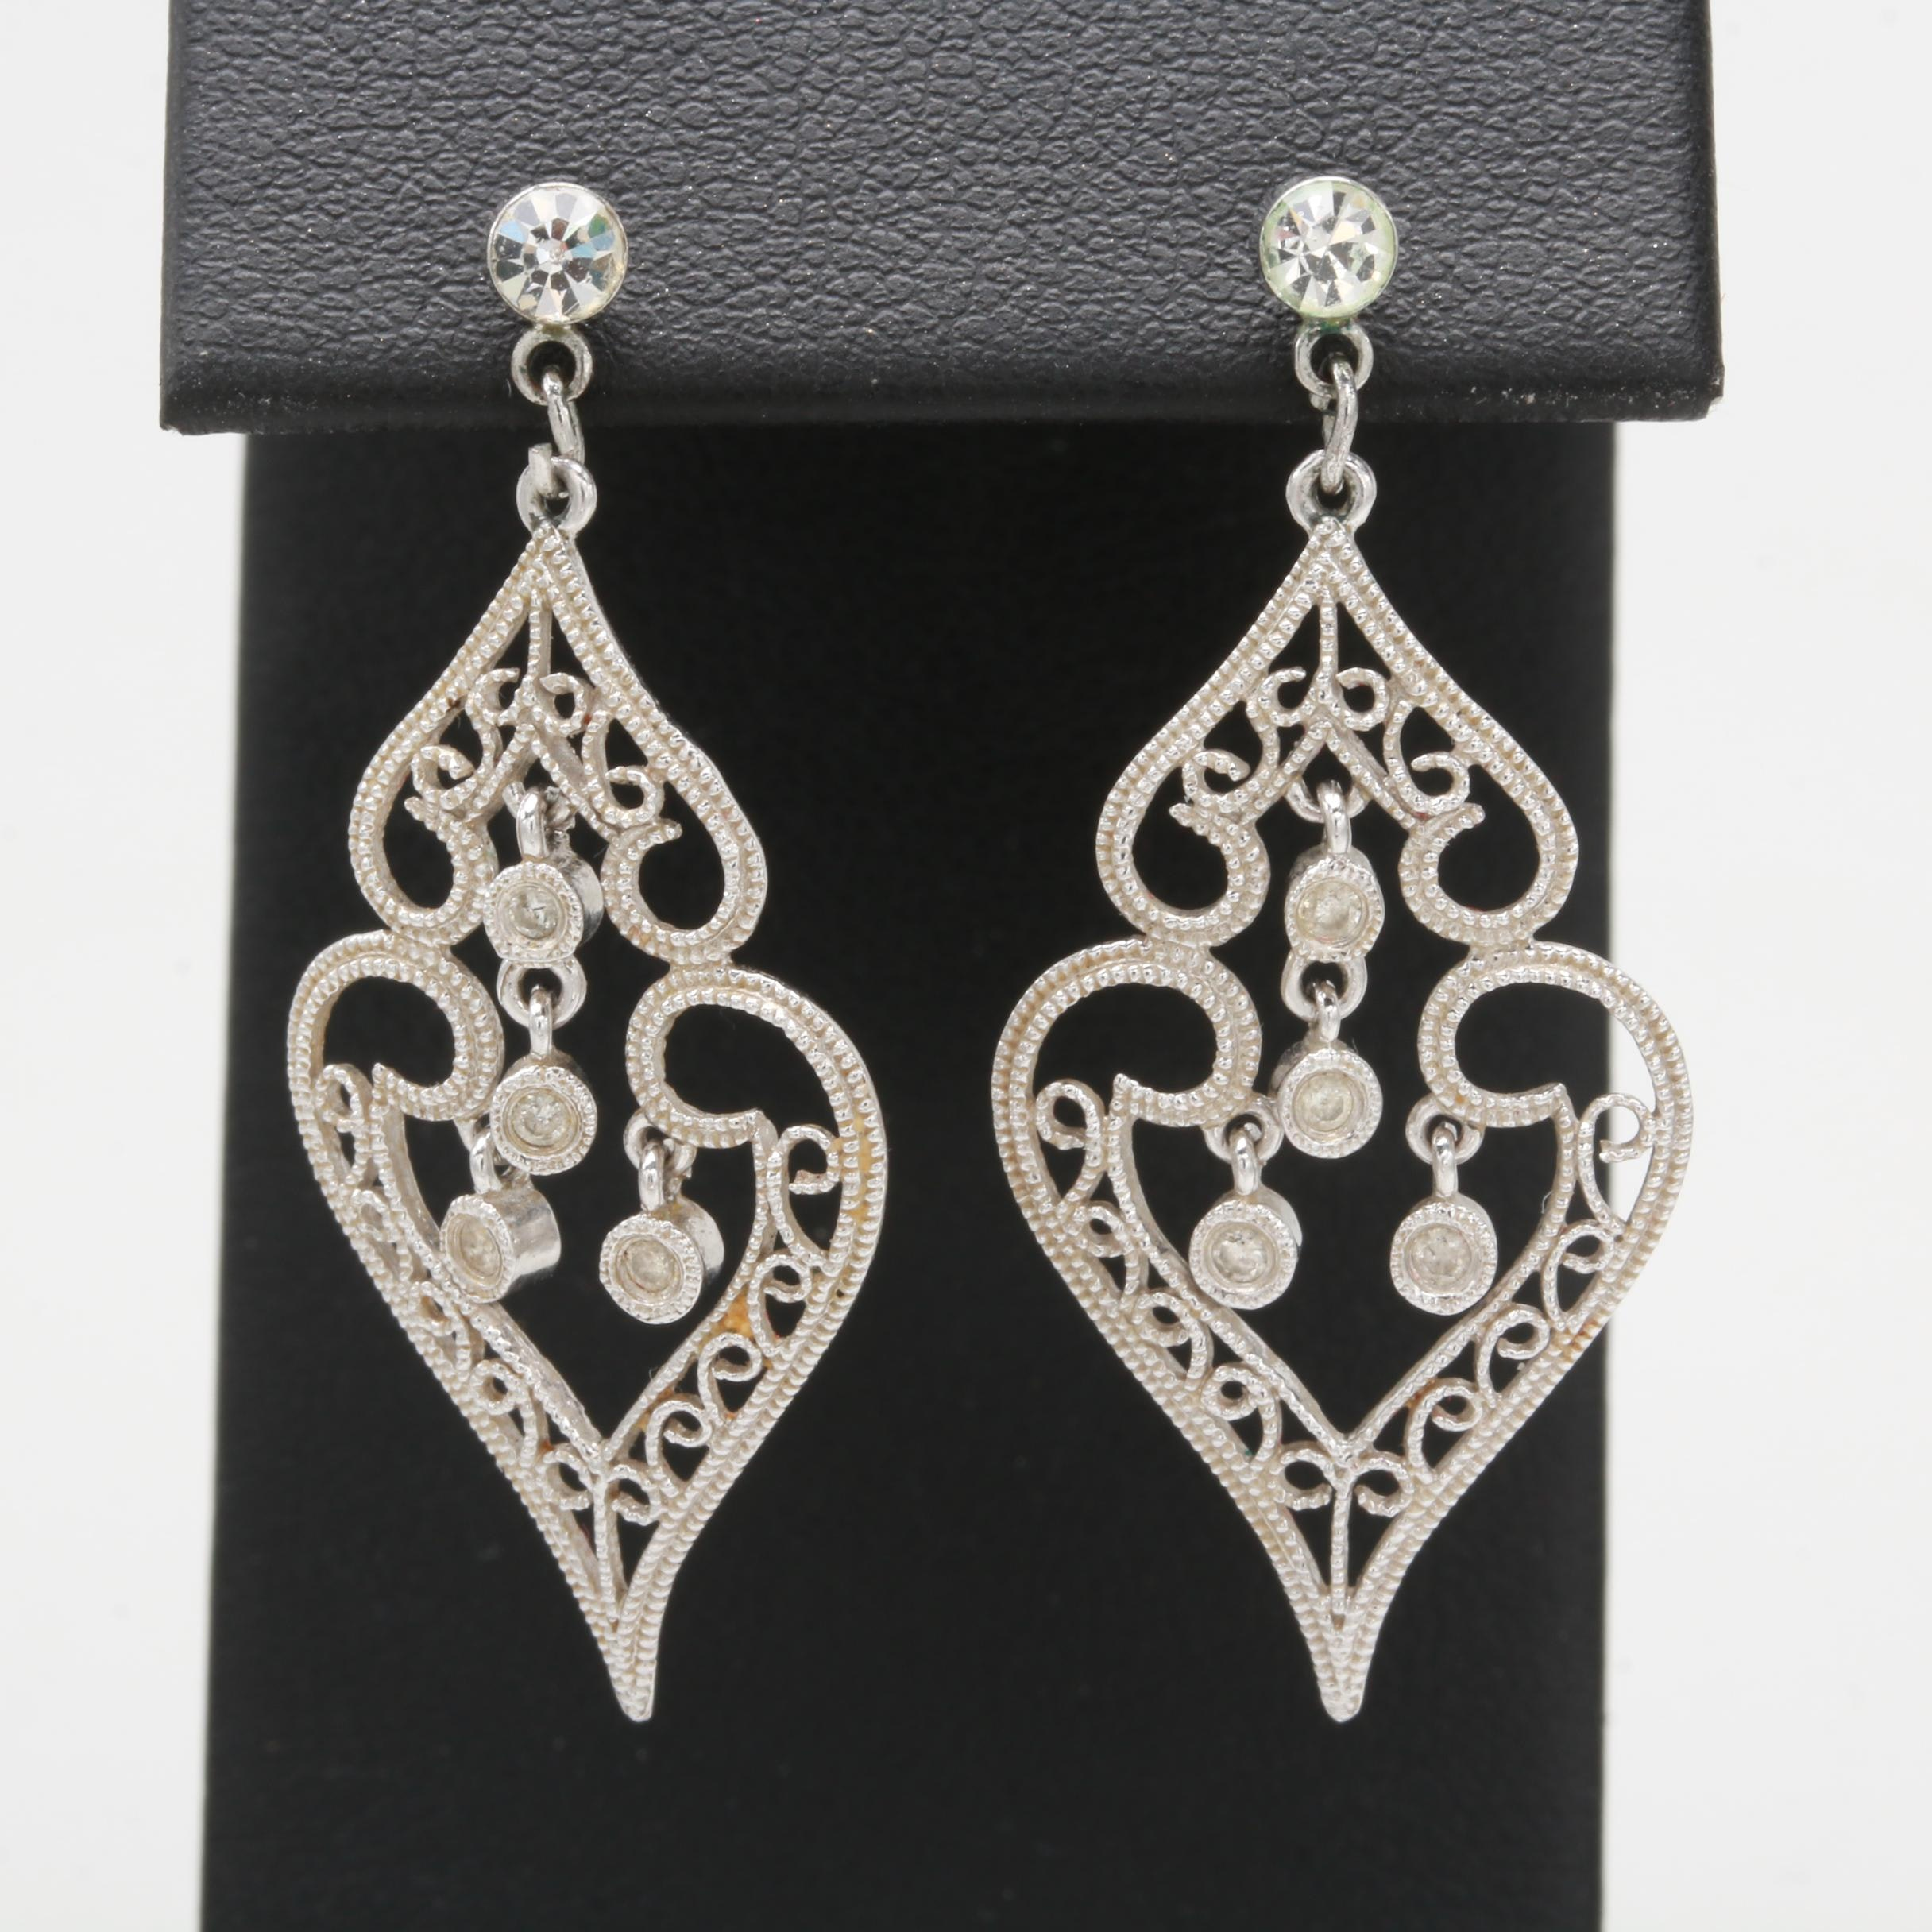 18K White Gold Diamond and Glass Crystal Earrings